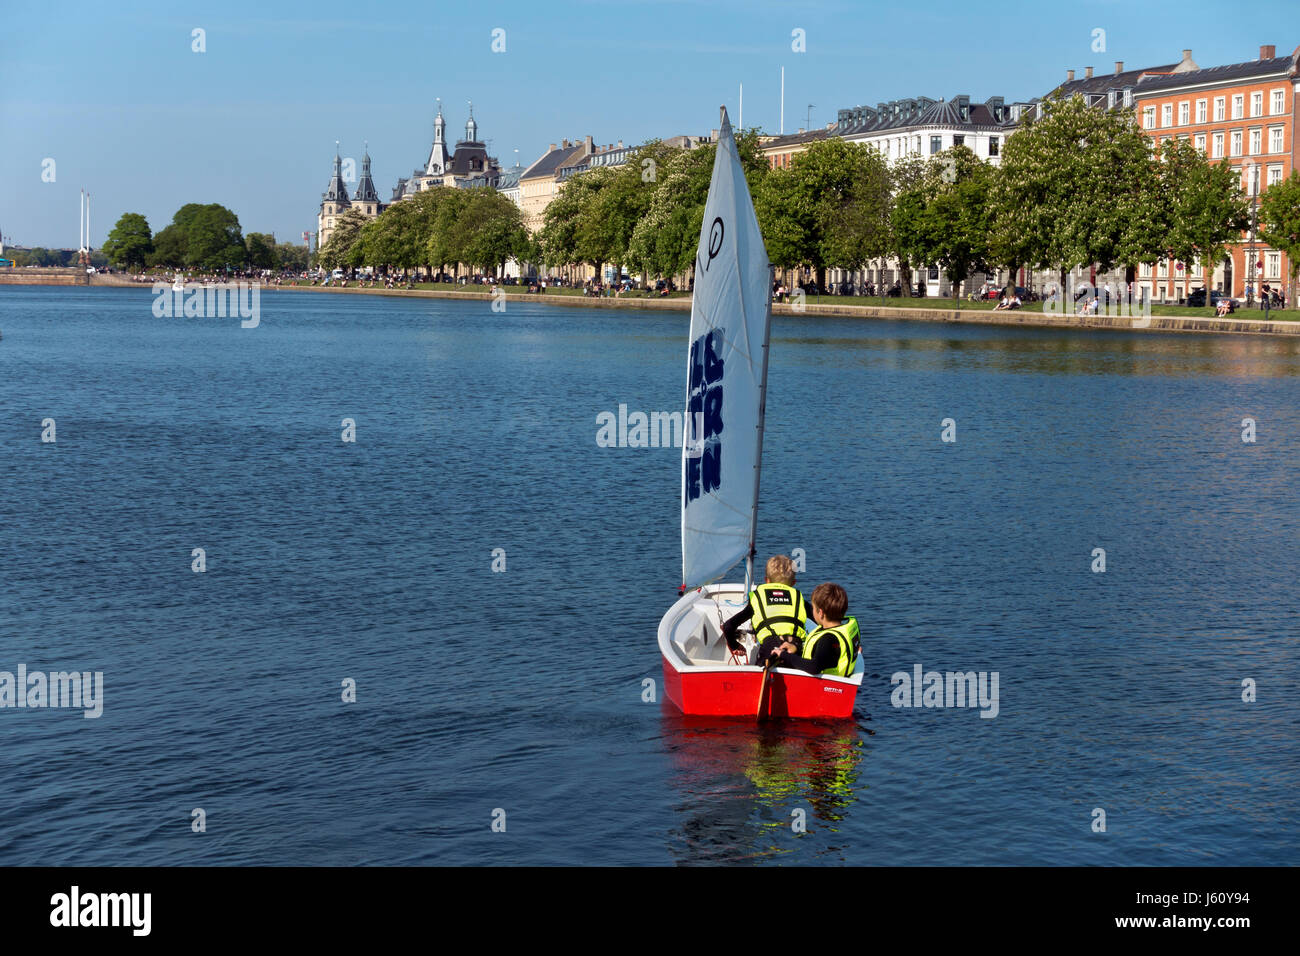 Two boys sailing in an optimist dinghy on the Peblinge Lake in central Copenhagen on a sunny afternoon in early - Stock Image